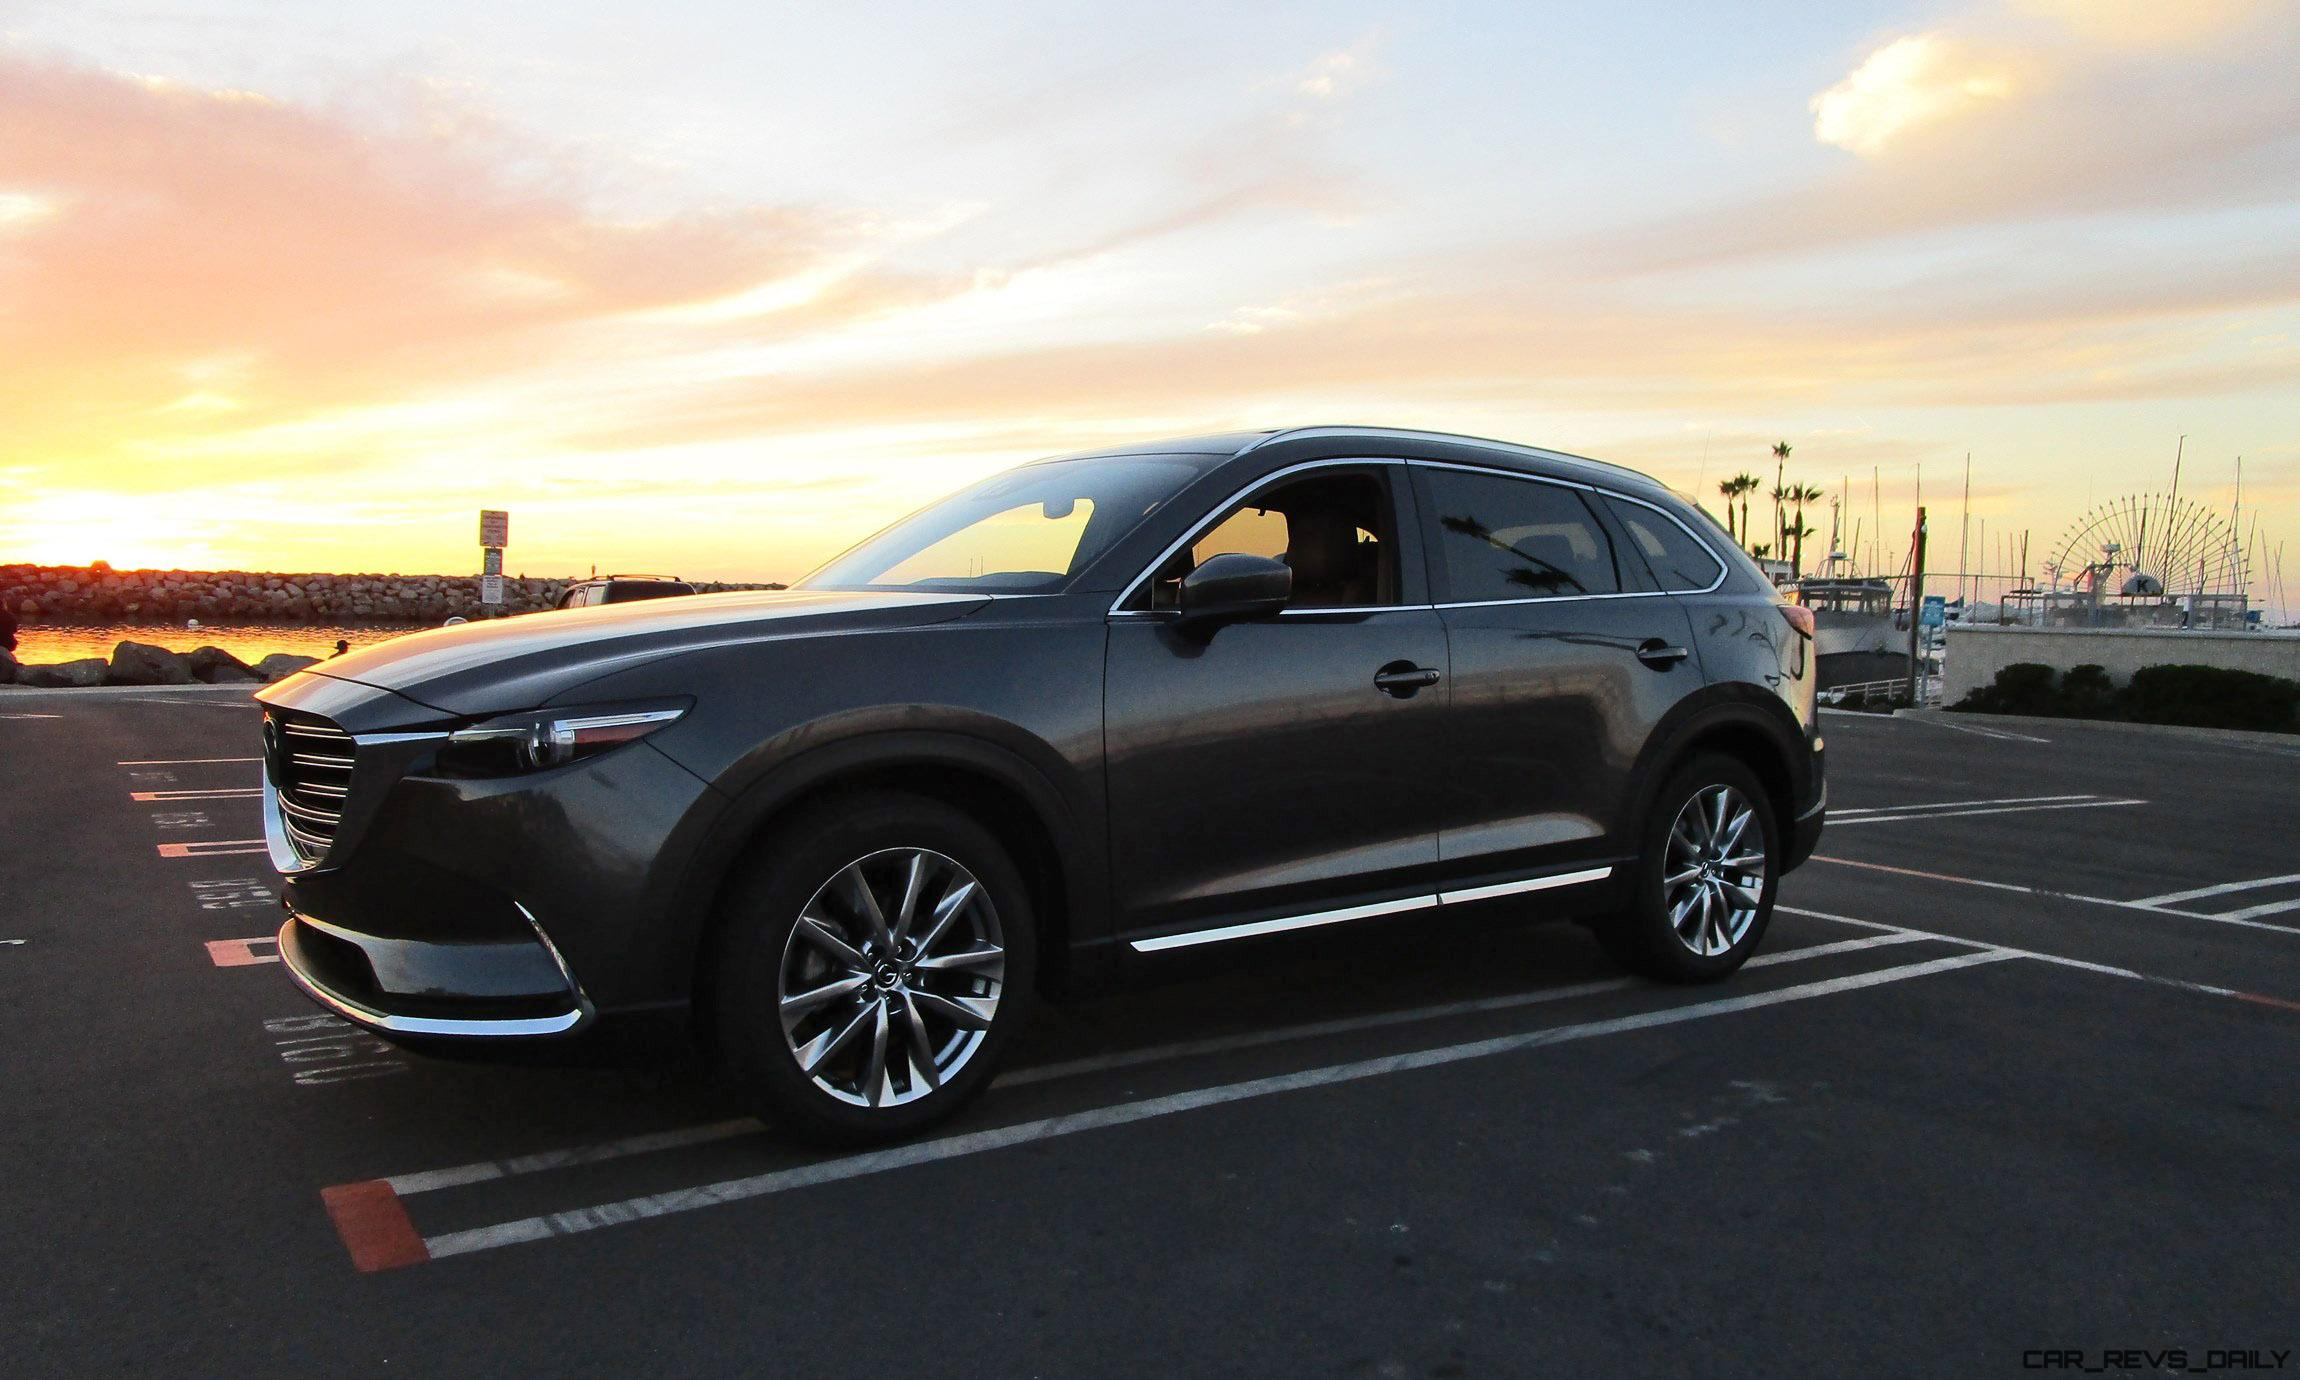 2016 Mazda Cx 9 Signature Road Test Review By Ben Lewis